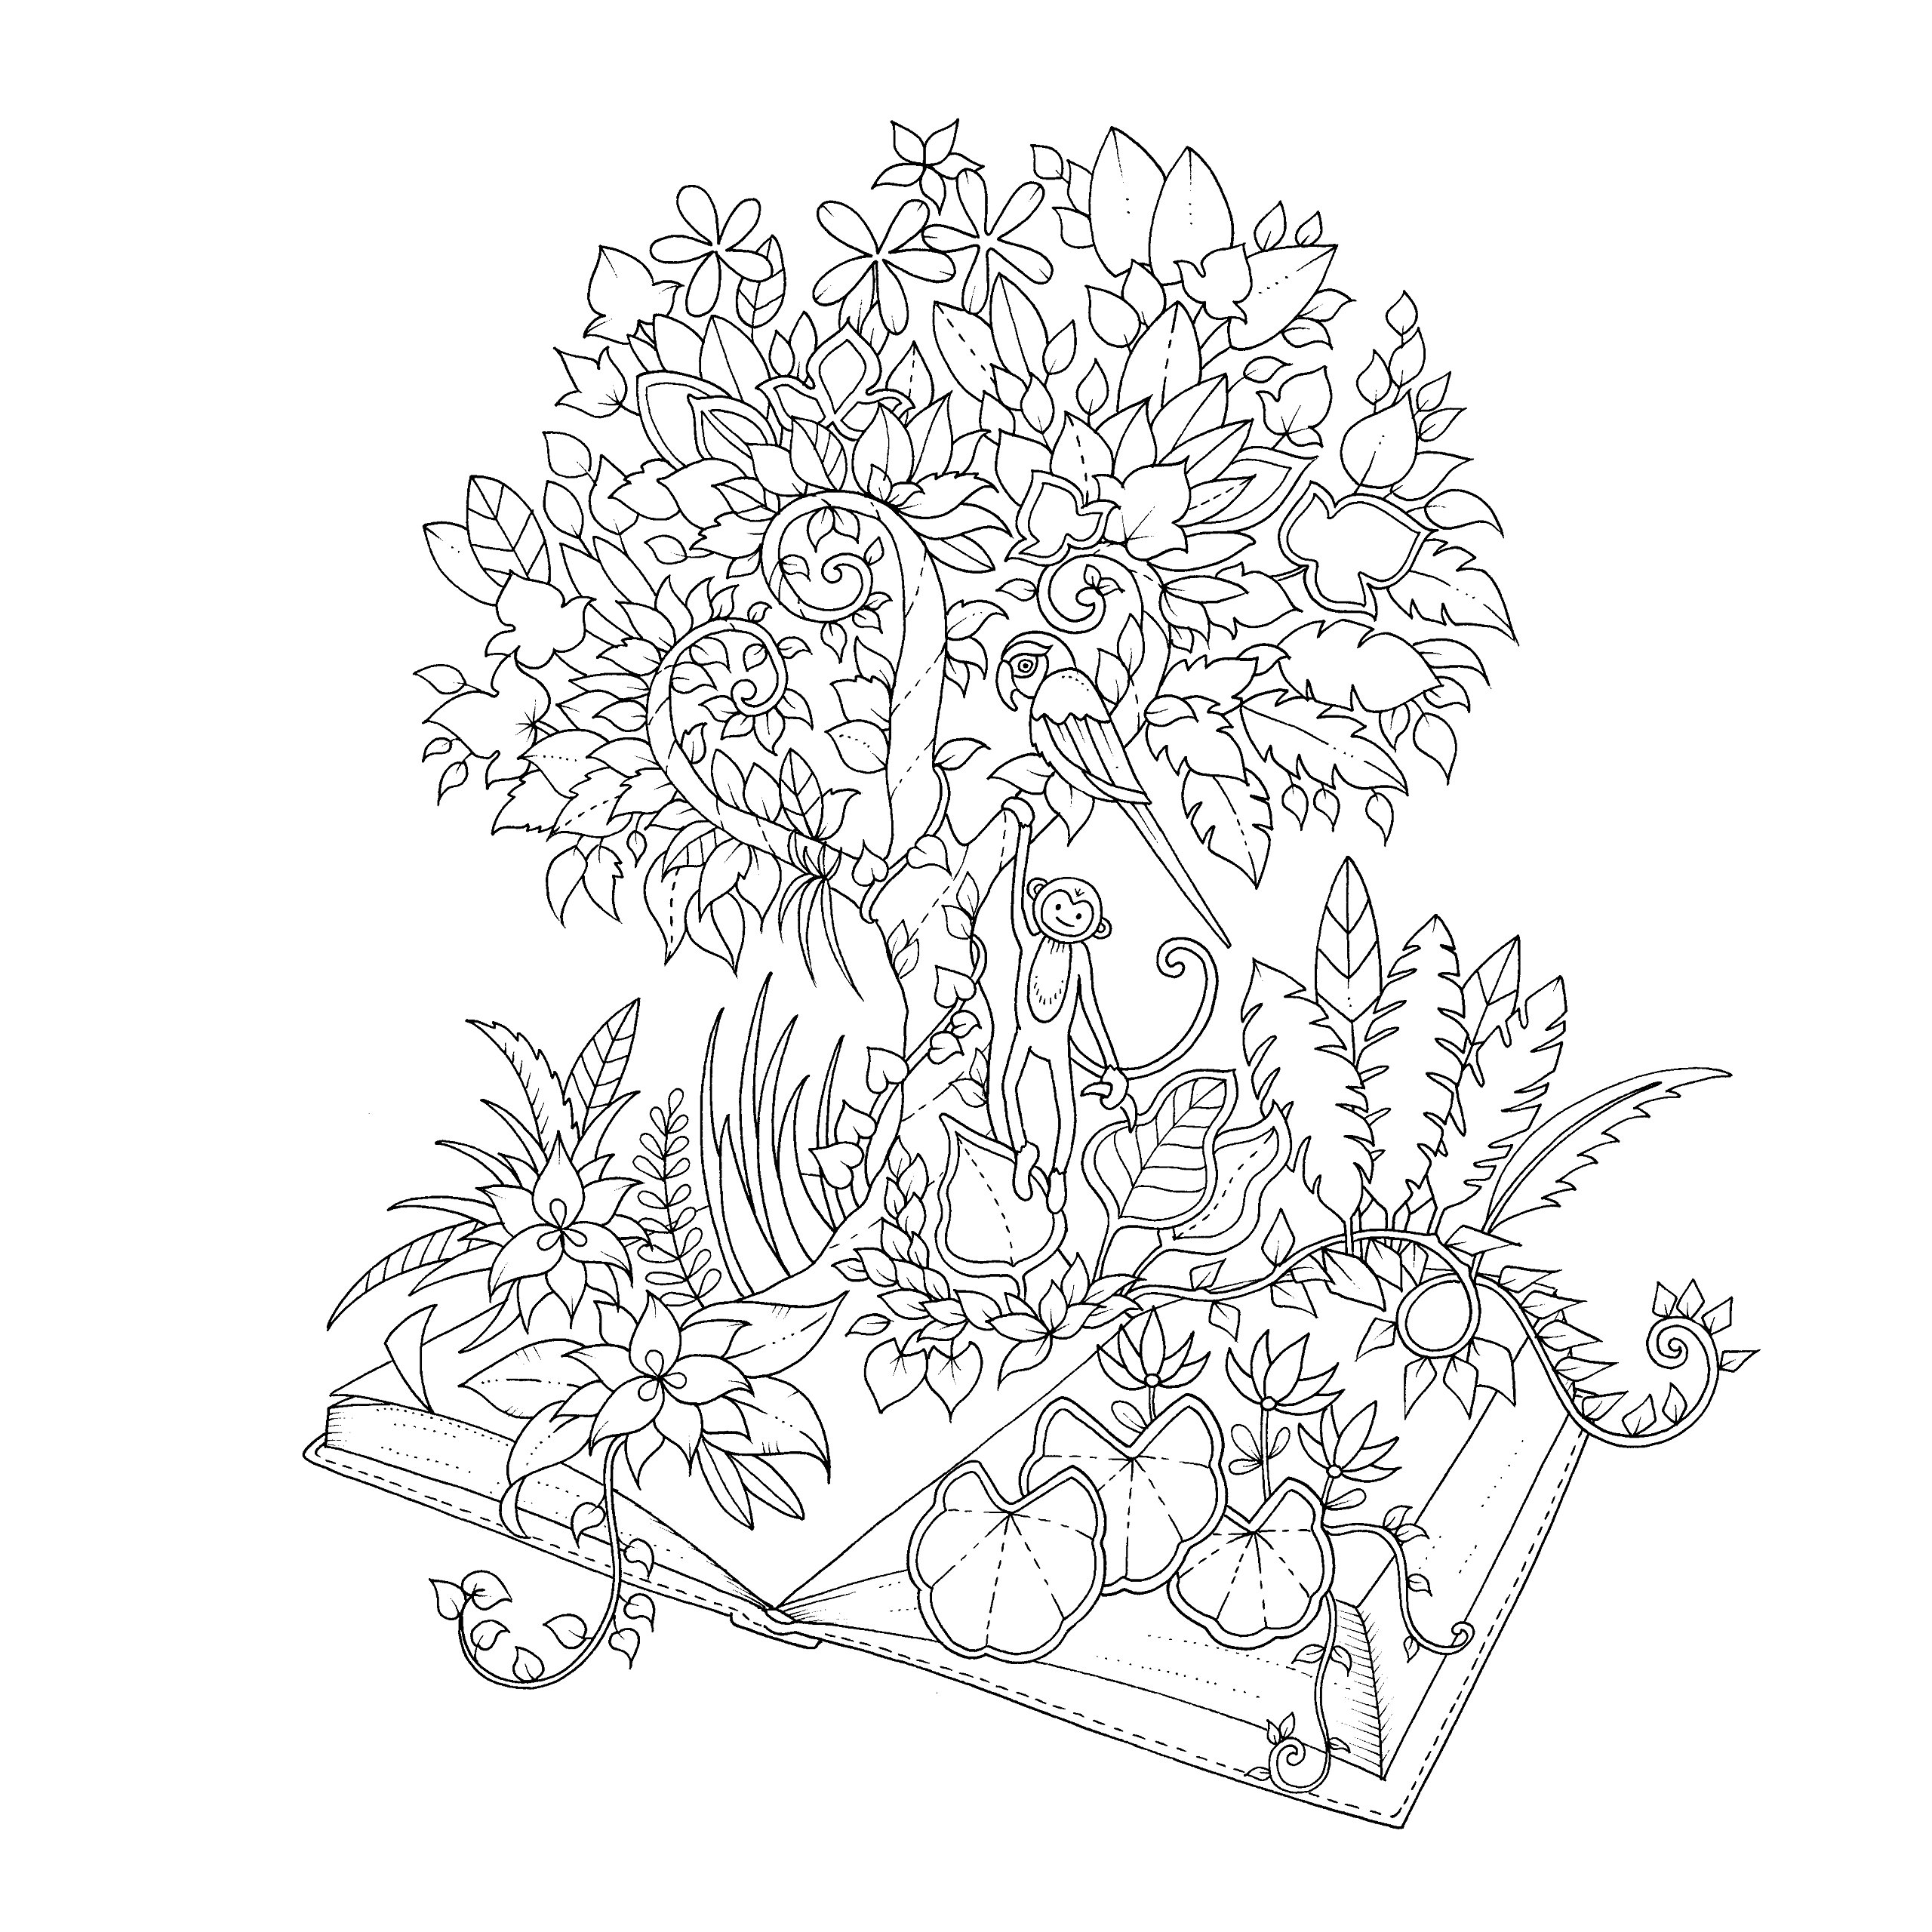 Jungle book colouring in pictures - Magical Jungle An Inky Expedition Colouring Book Colouring Books Amazon Co Uk Johanna Basford 9780753557167 Books